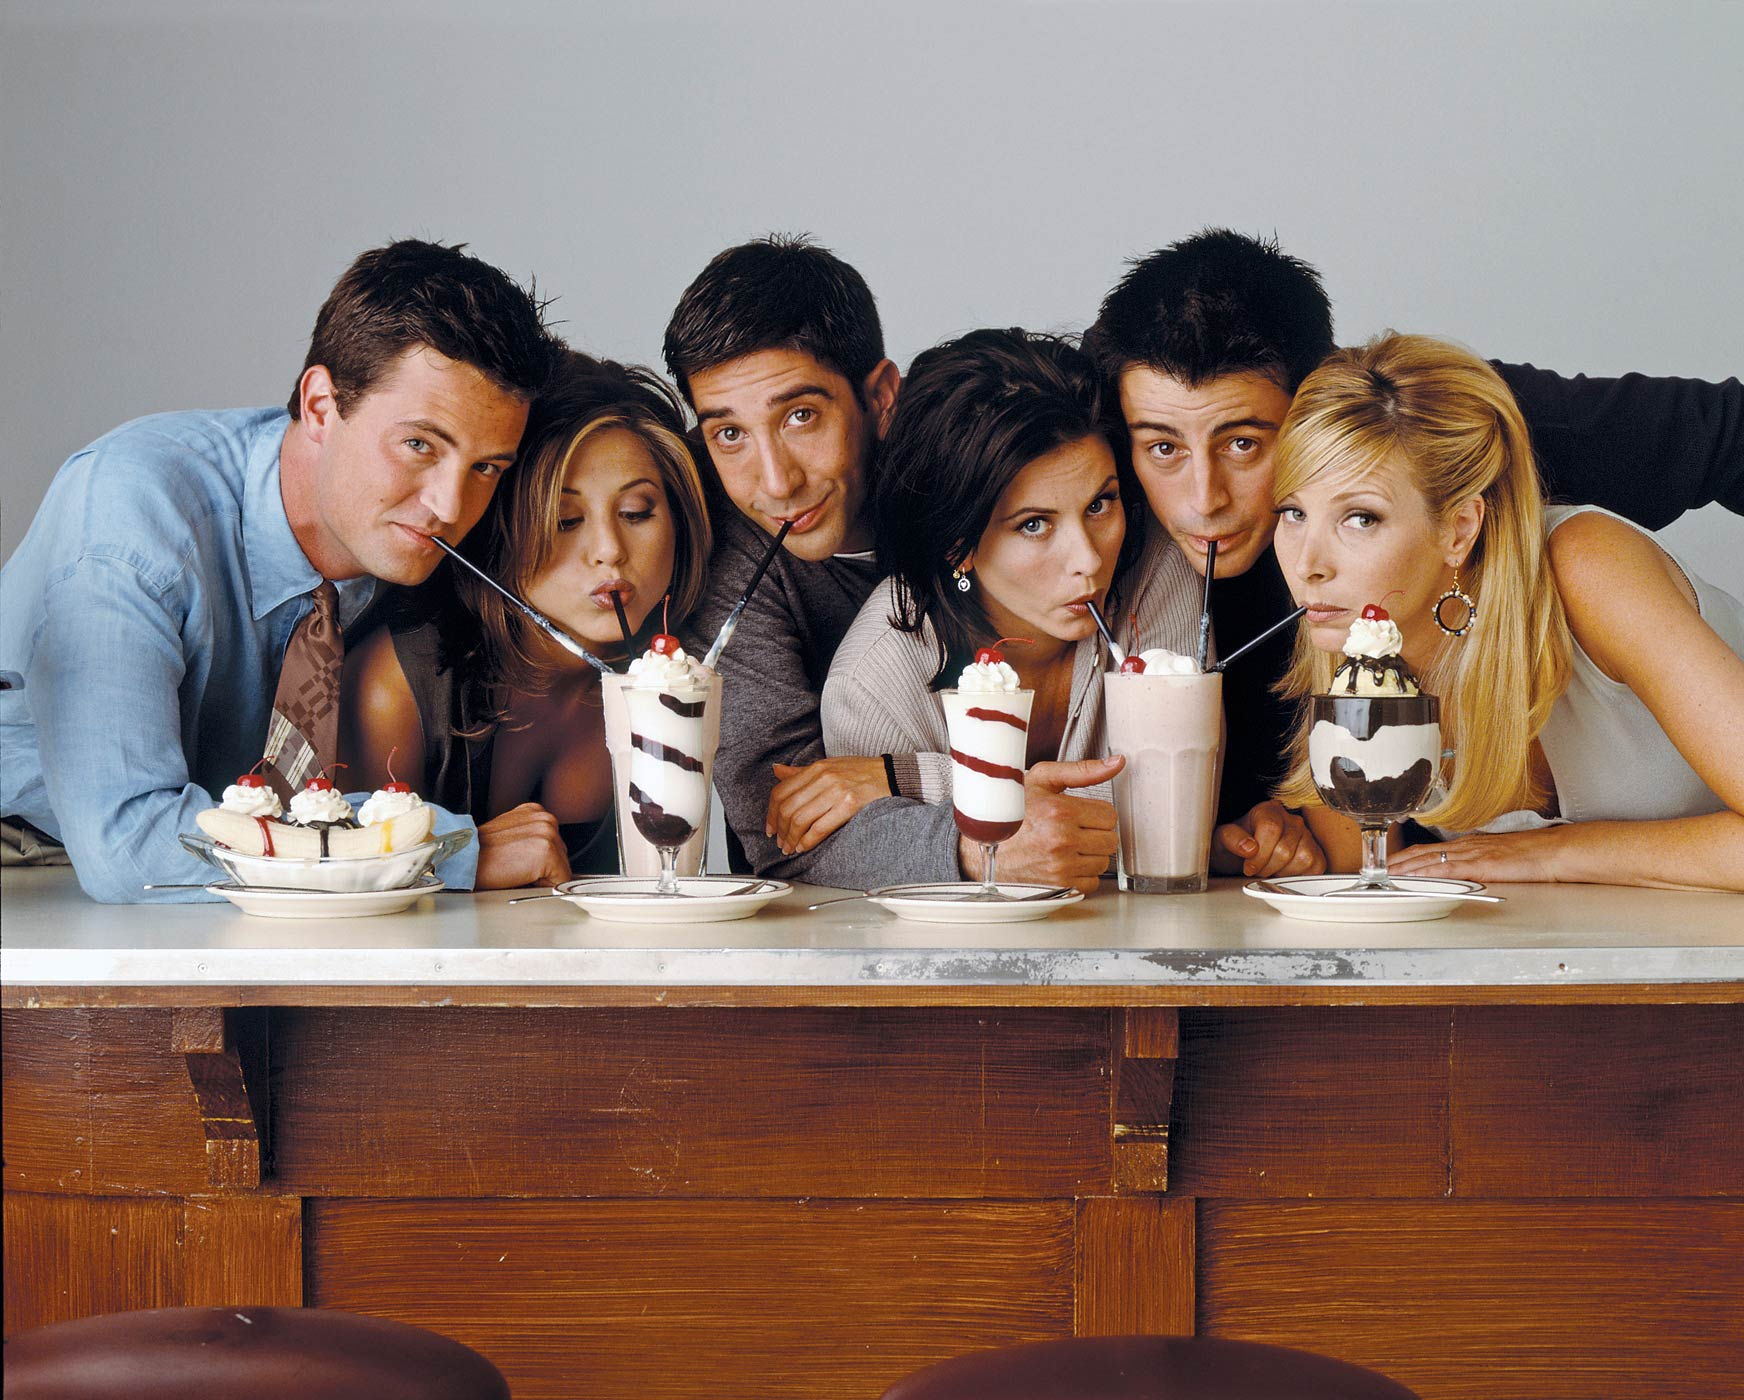 From left: Matthew Perry as Chandler Bing, Jennifer Aniston as Rachel Green, David Schwimmer as Ross Geller, Courteney Cox as Monica Geller, Matt Le Blanc as Joey Tribbiani, Lisa Kudrow as Phoebe Buffay in Friends